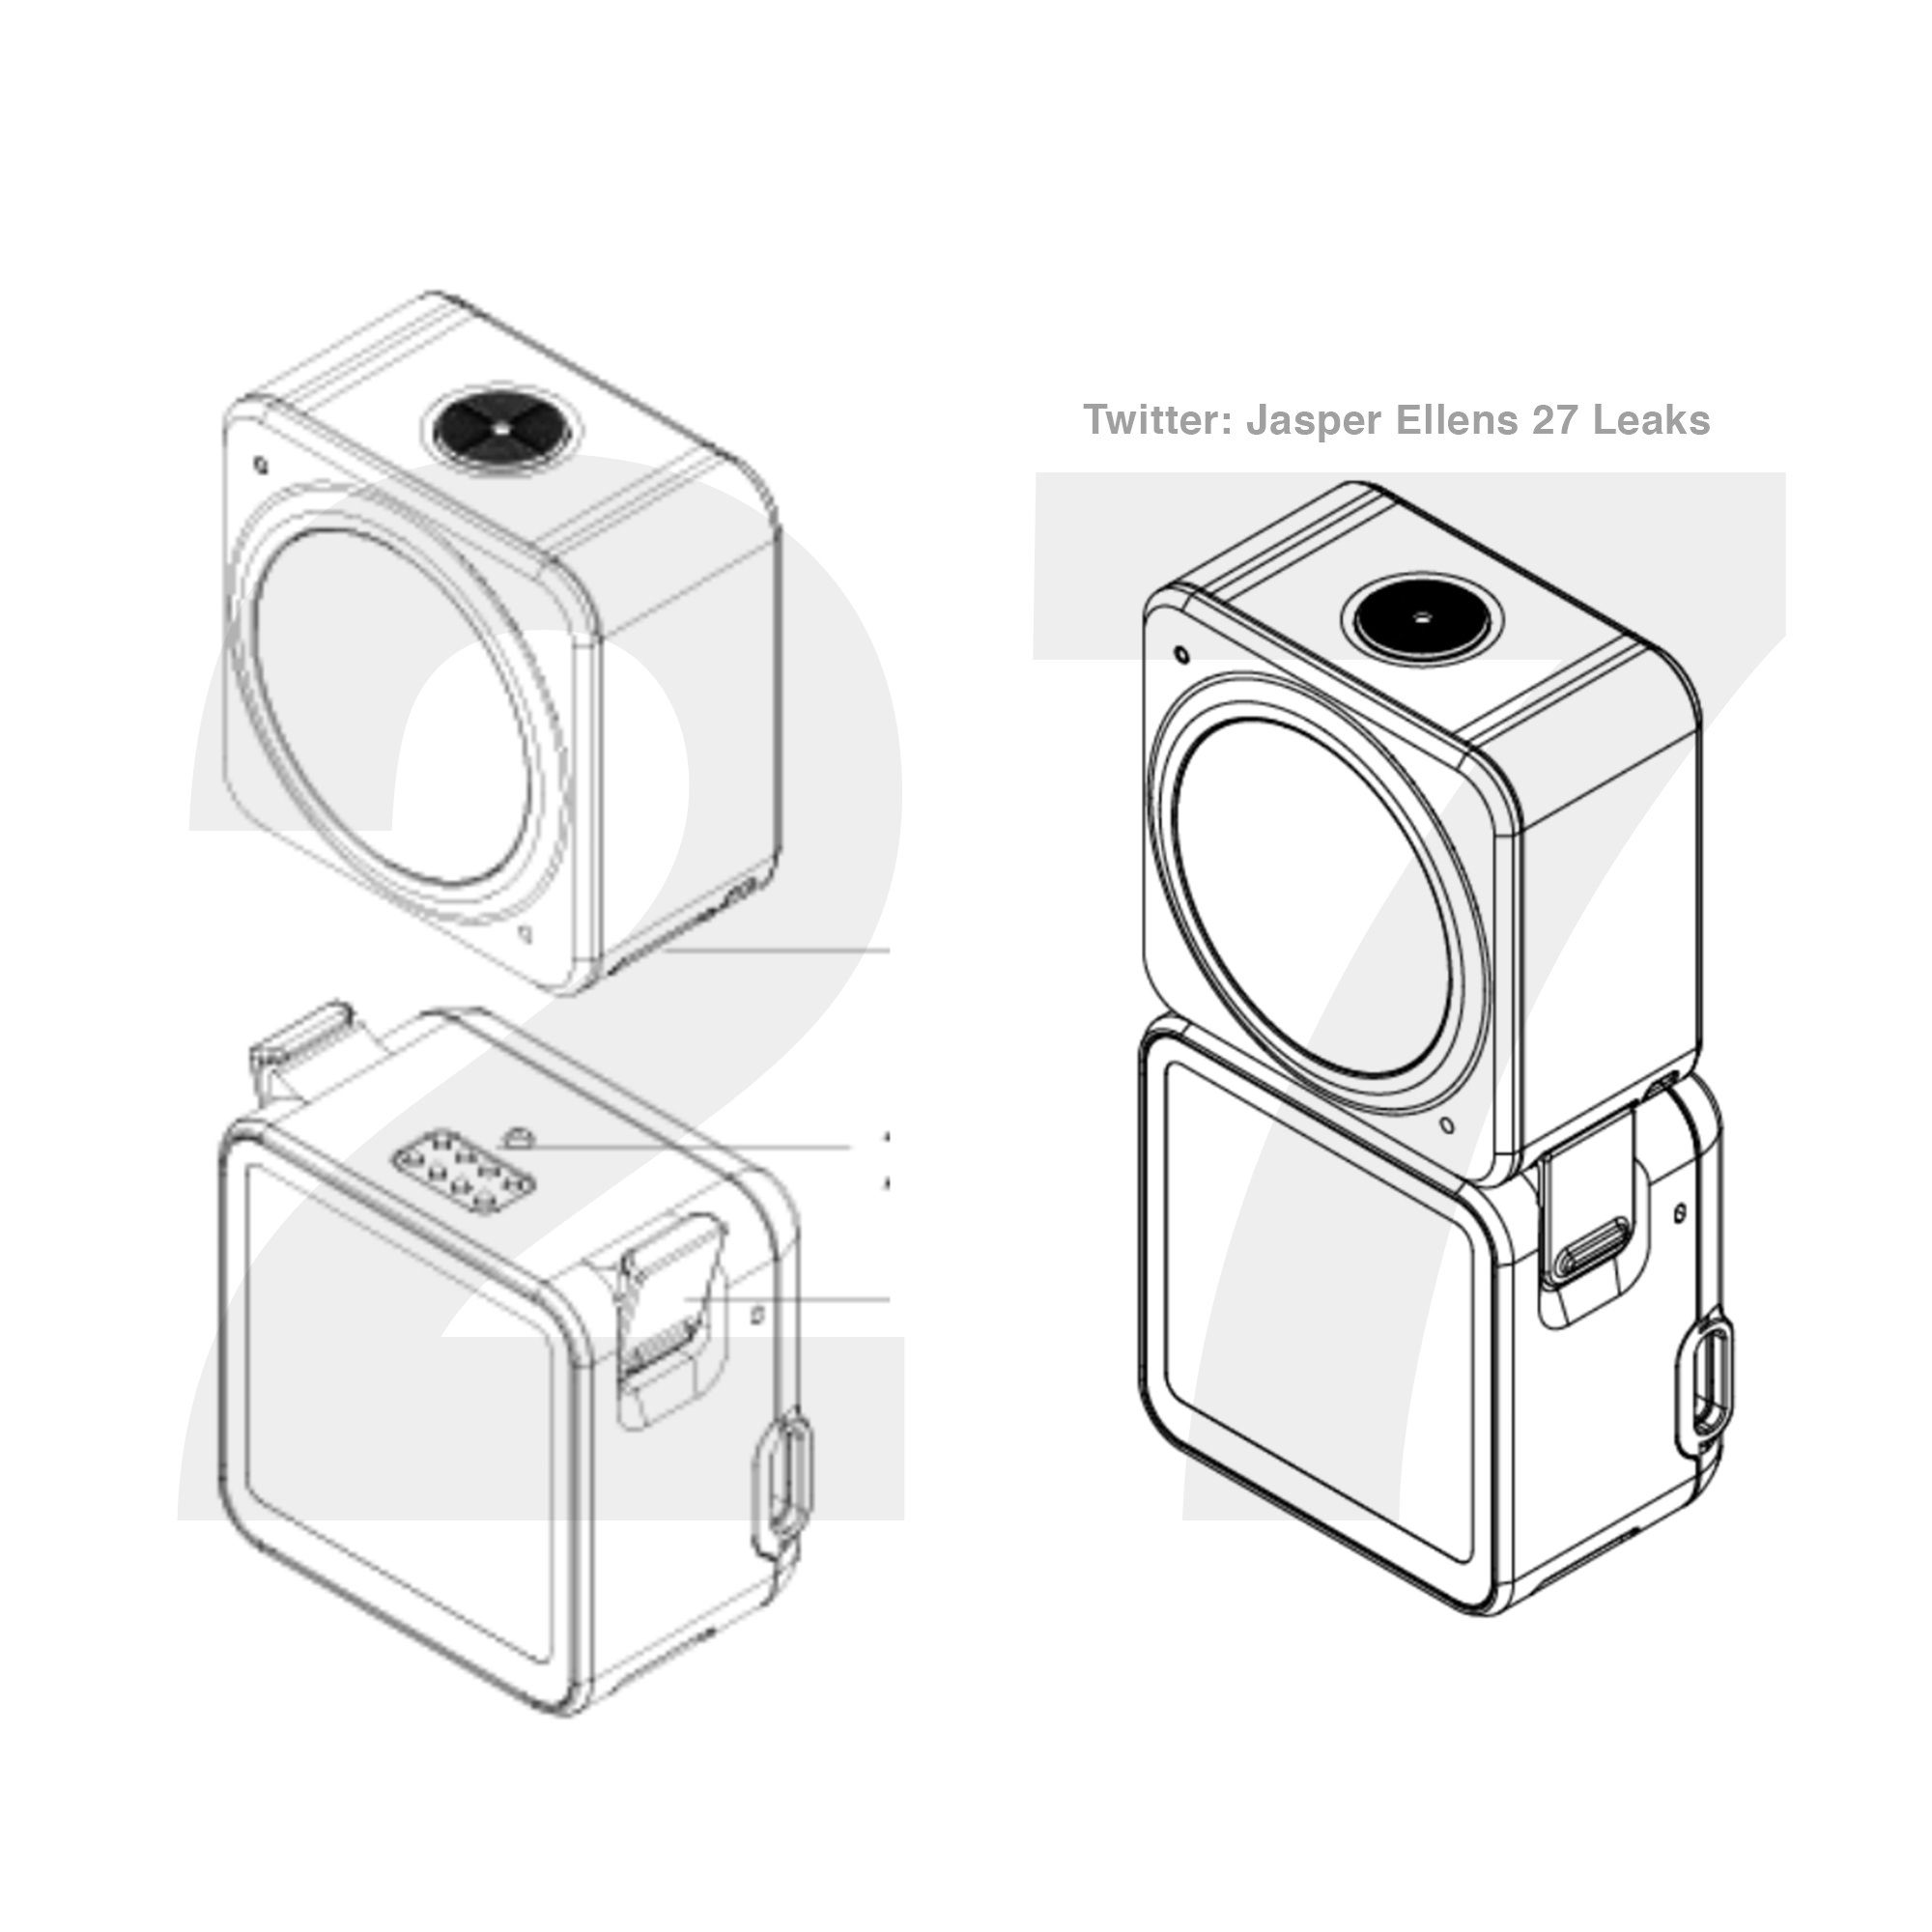 DJI Osmo Action 2 (OA2) specs, graphics, to be released soon